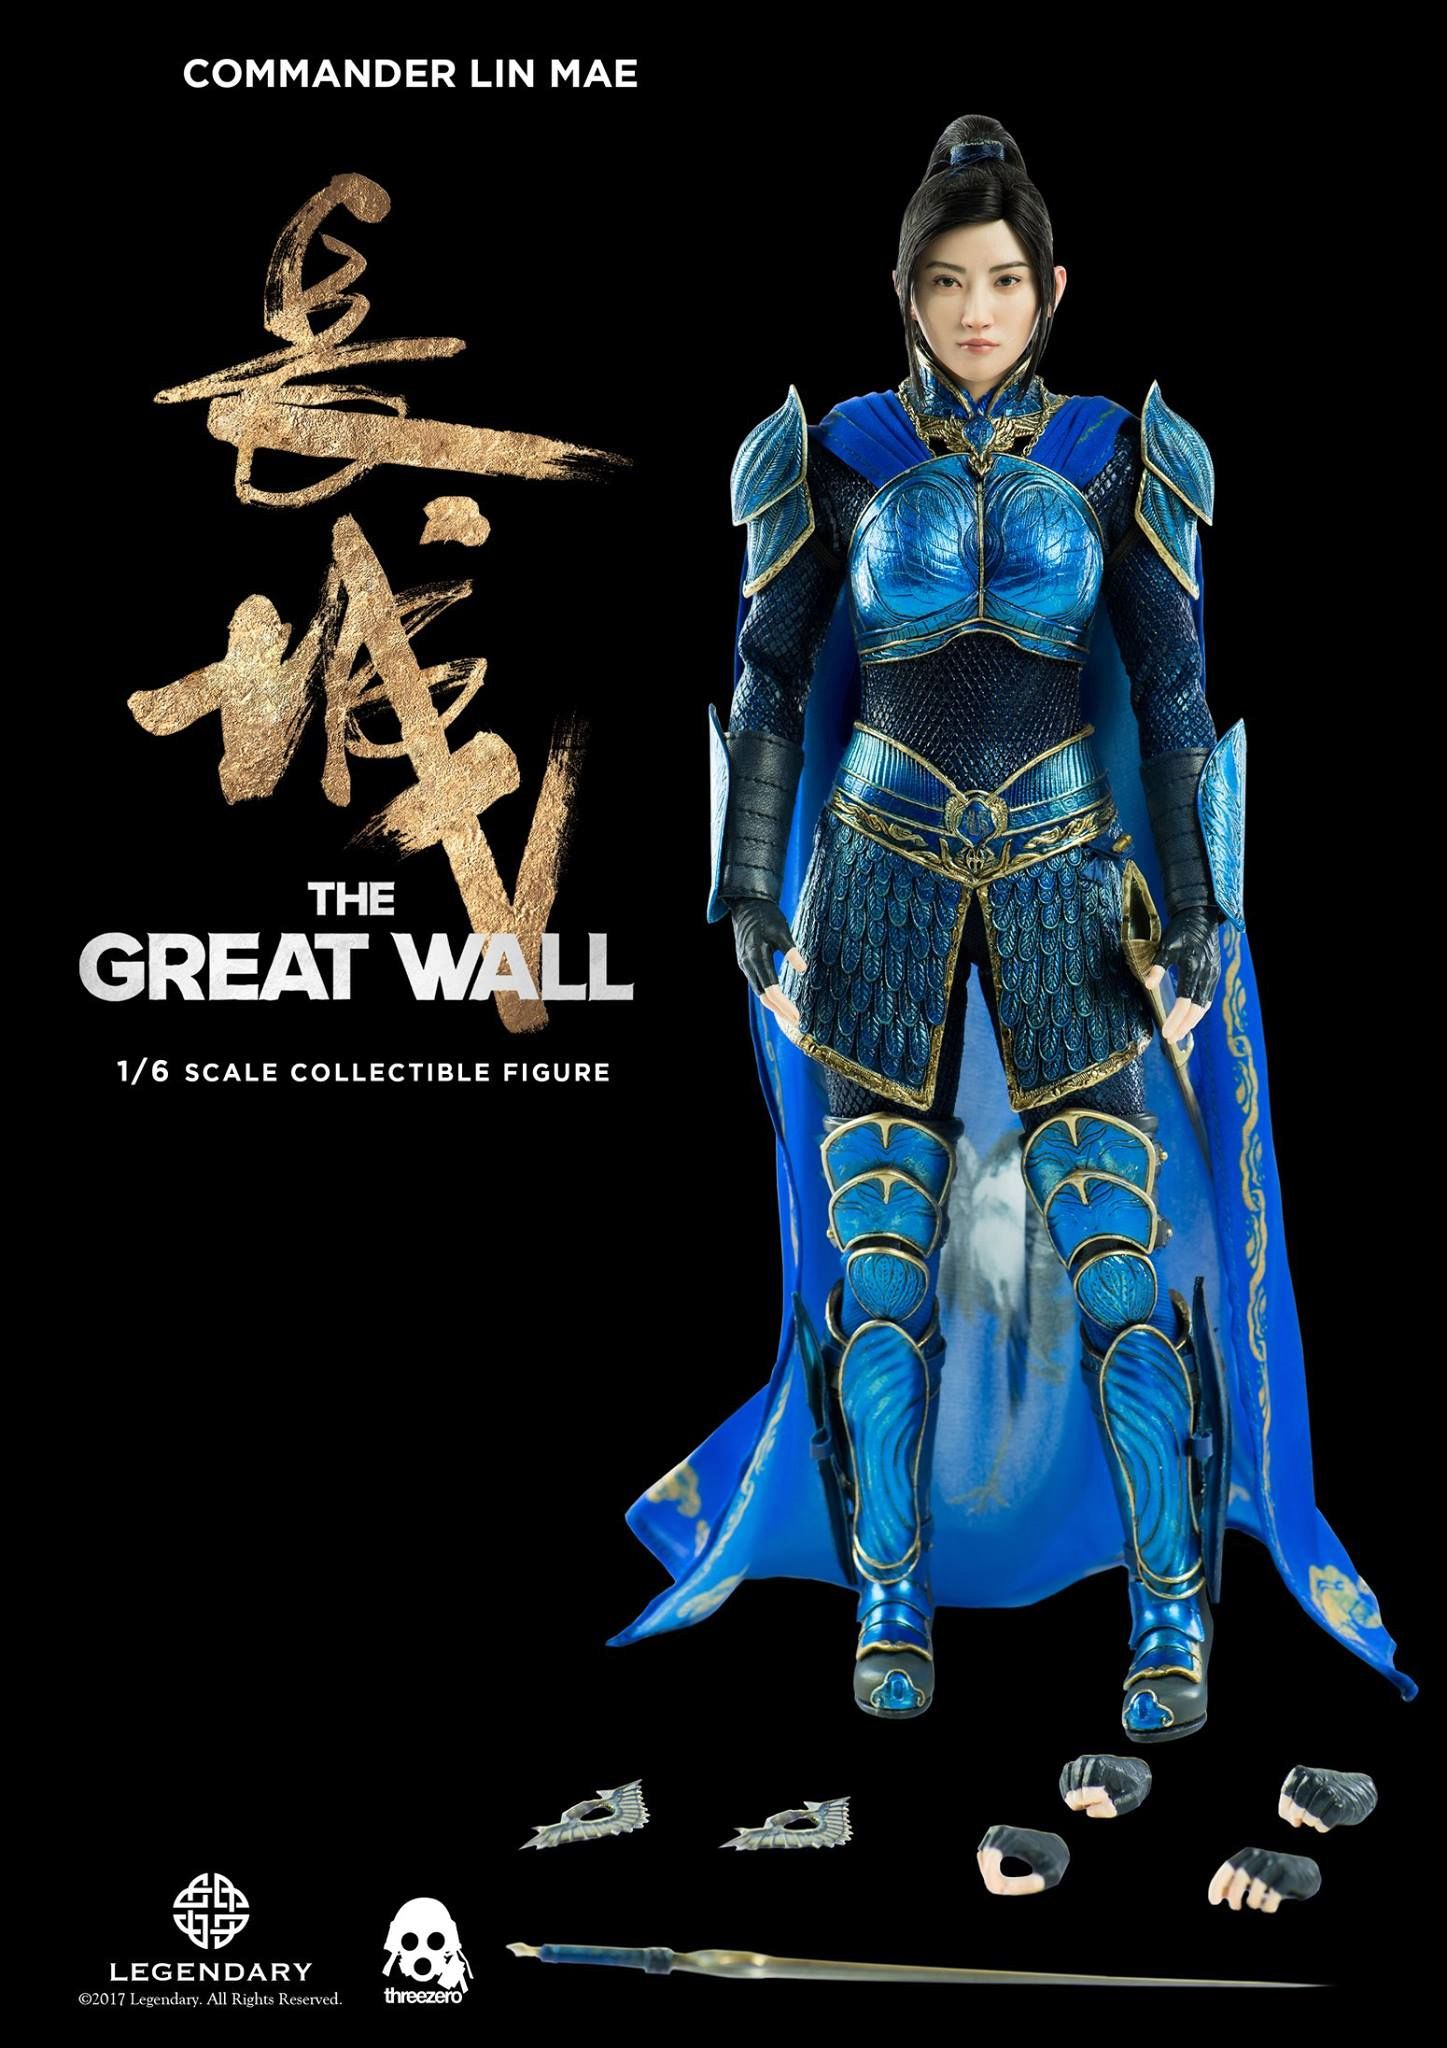 Lin-Mae-The-Great-Wall-Collectible-Action-Figure-13